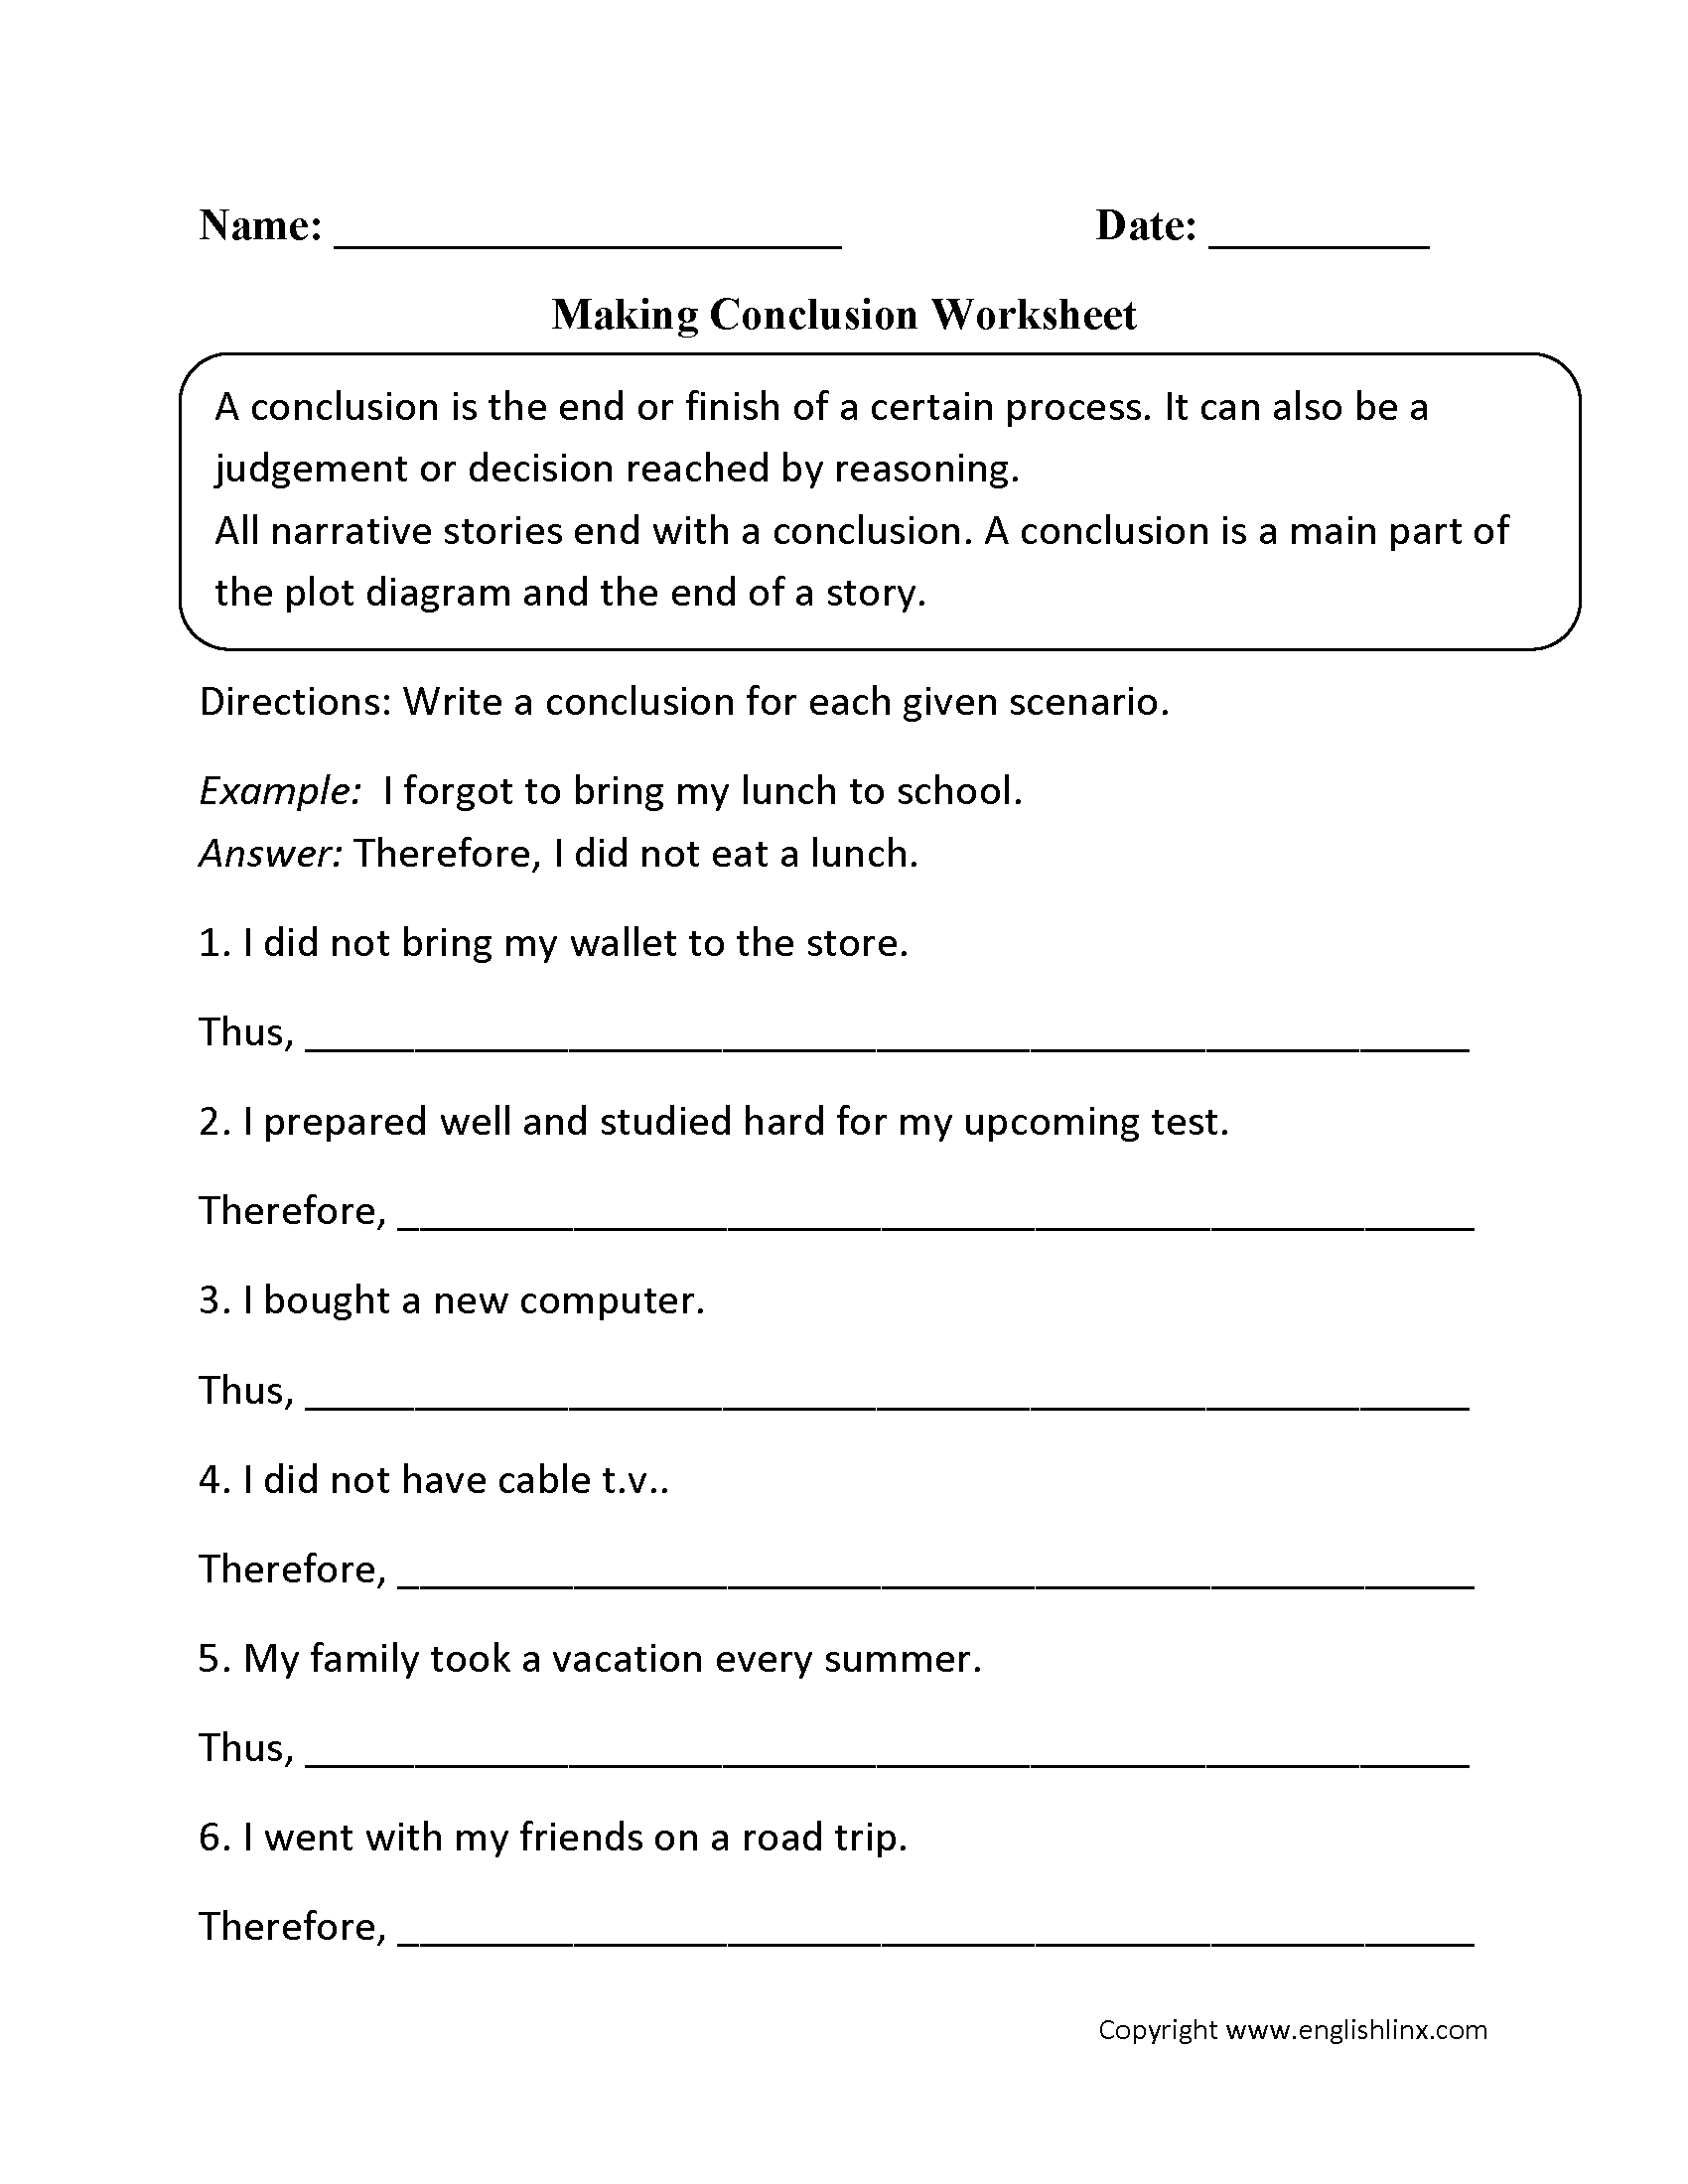 Worksheets 6th Grade Writing Worksheets englishlinx com writing conclusions worksheets worksheets